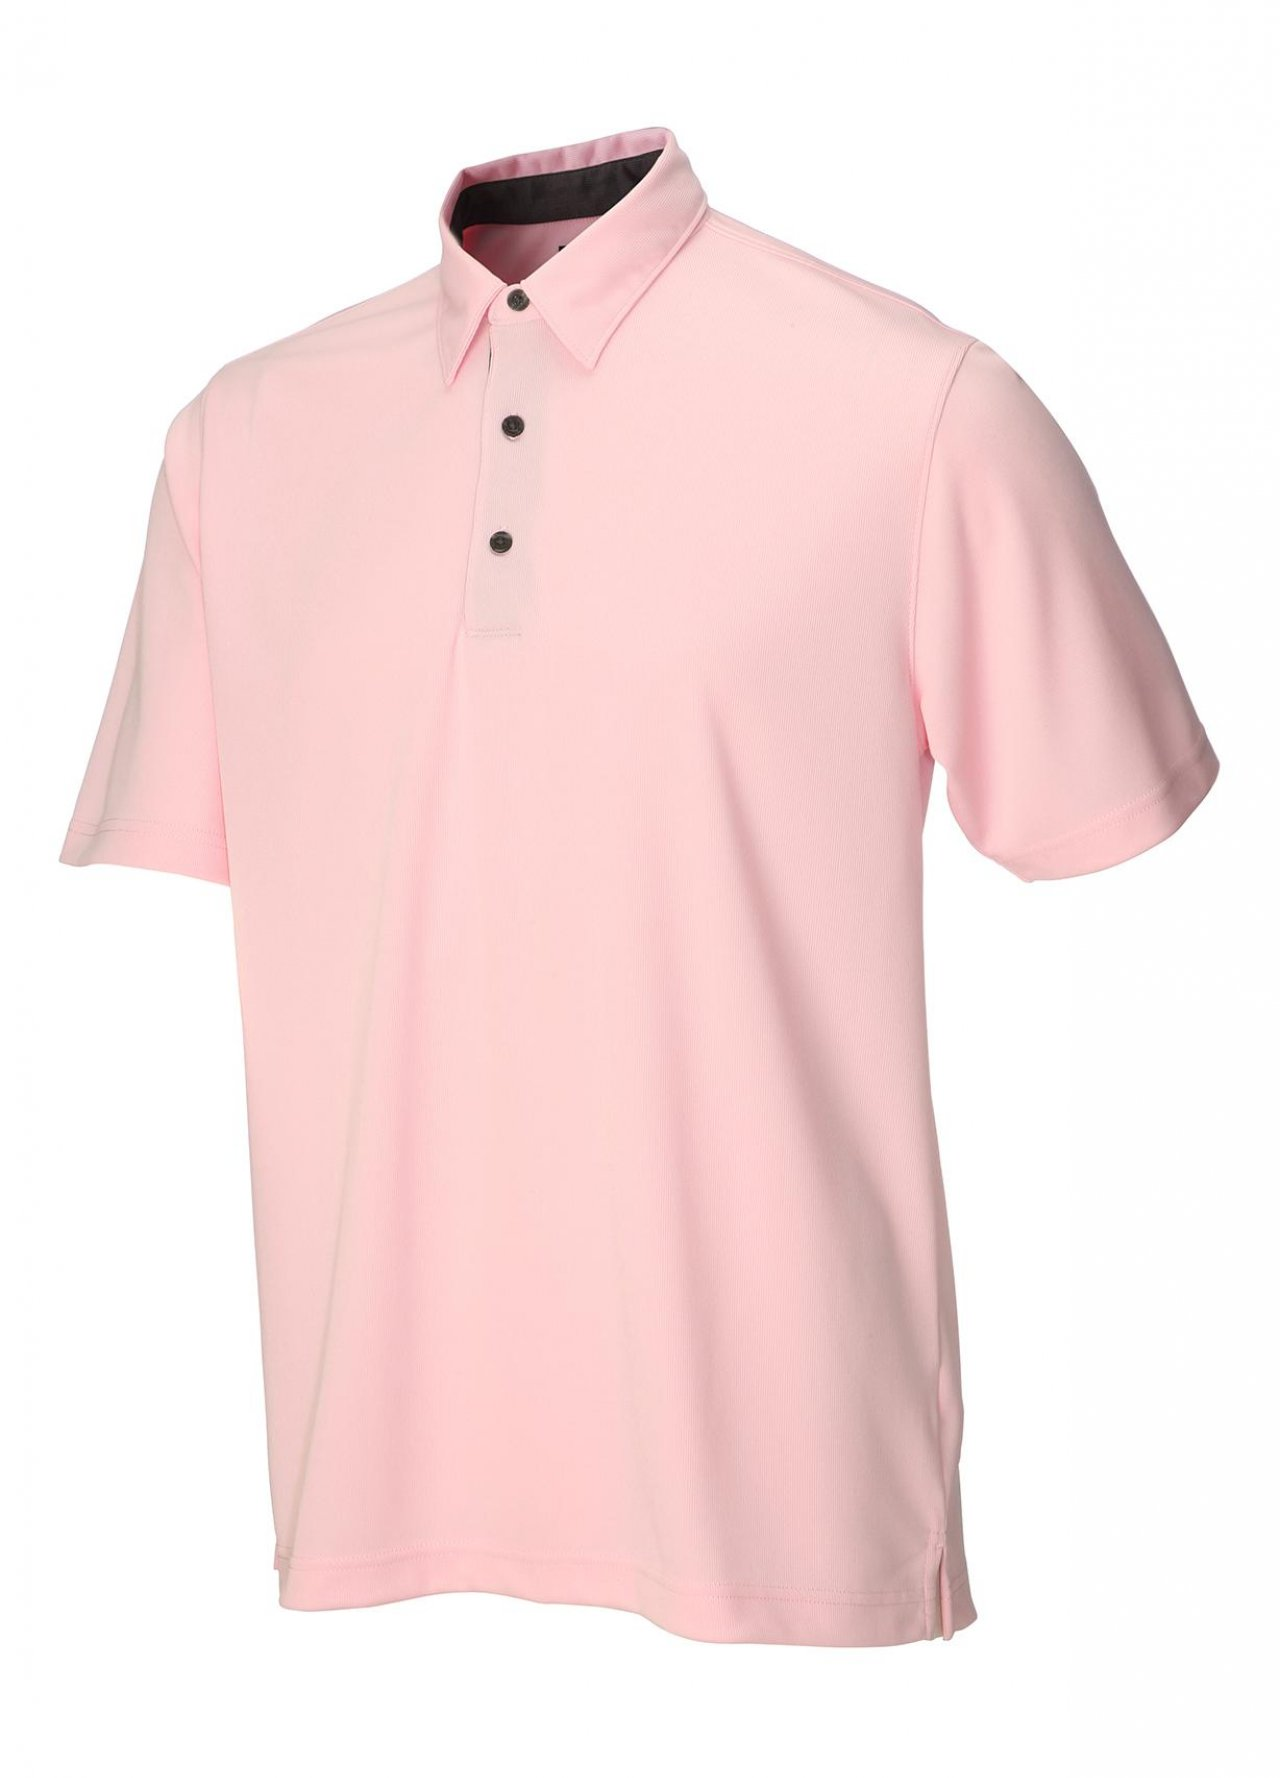 Greg Norman Polo Shirts Costco